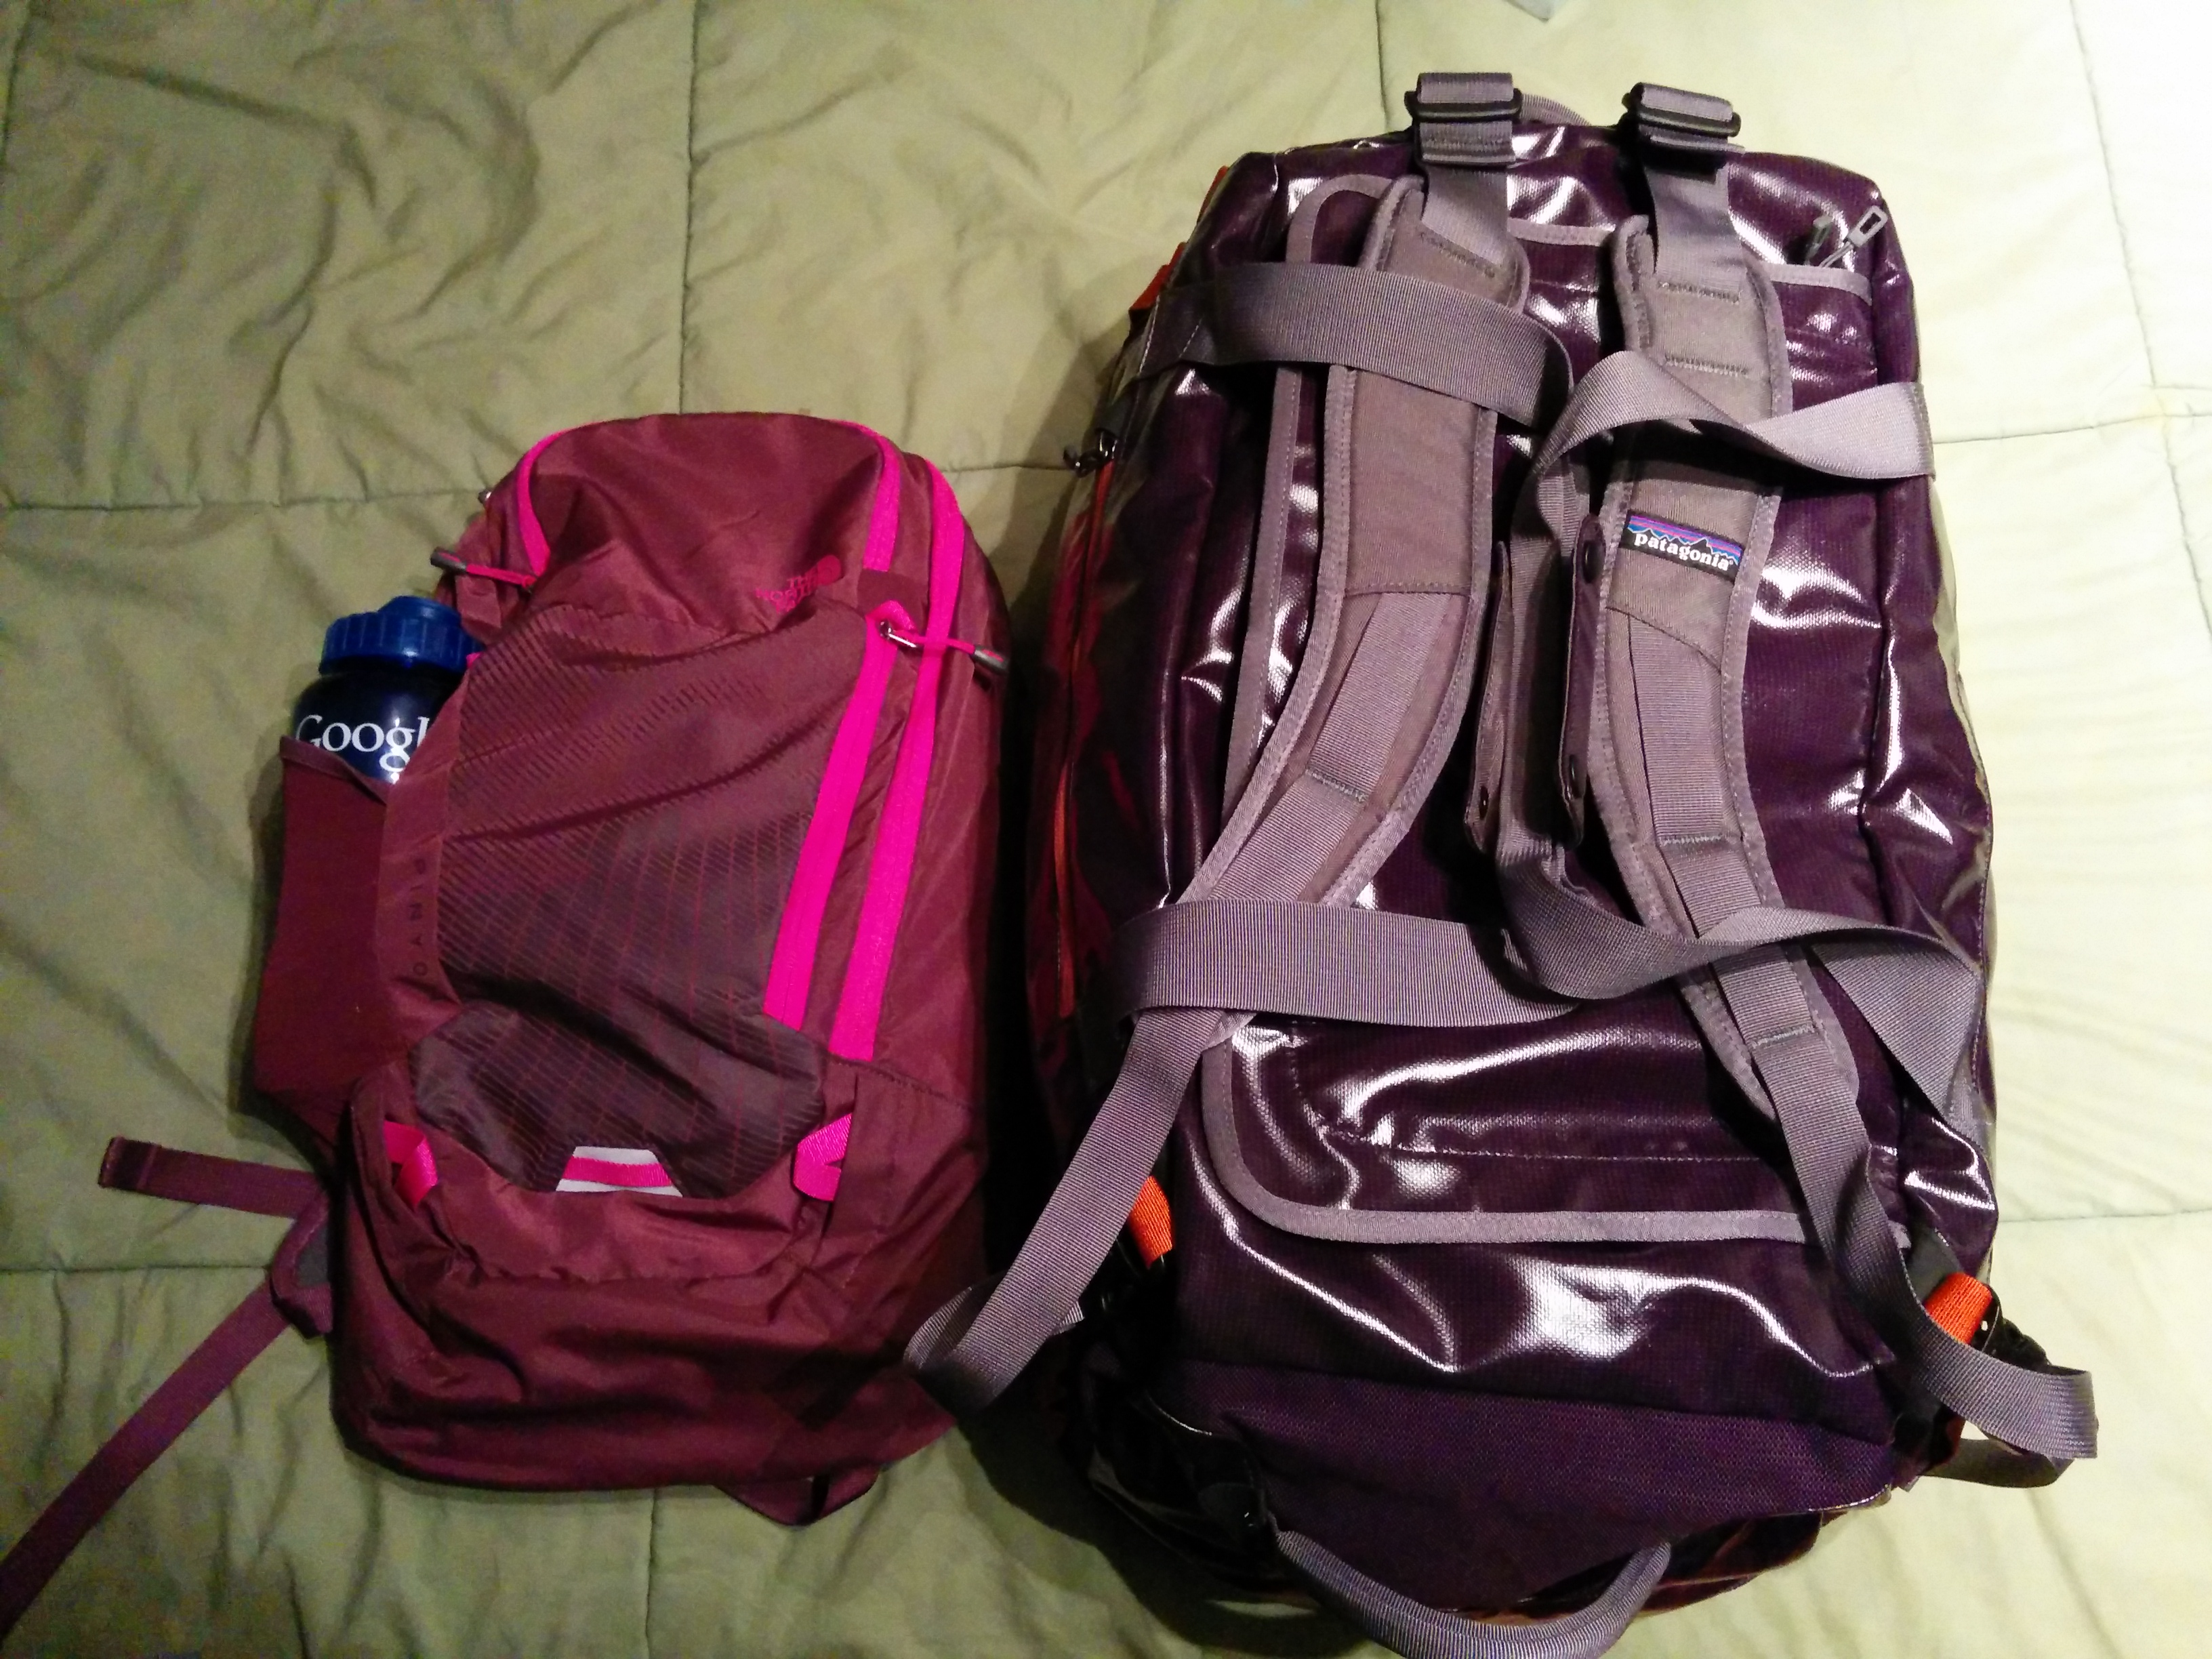 f41e1a144 What to pack for a trip around the world (and still feel human ...